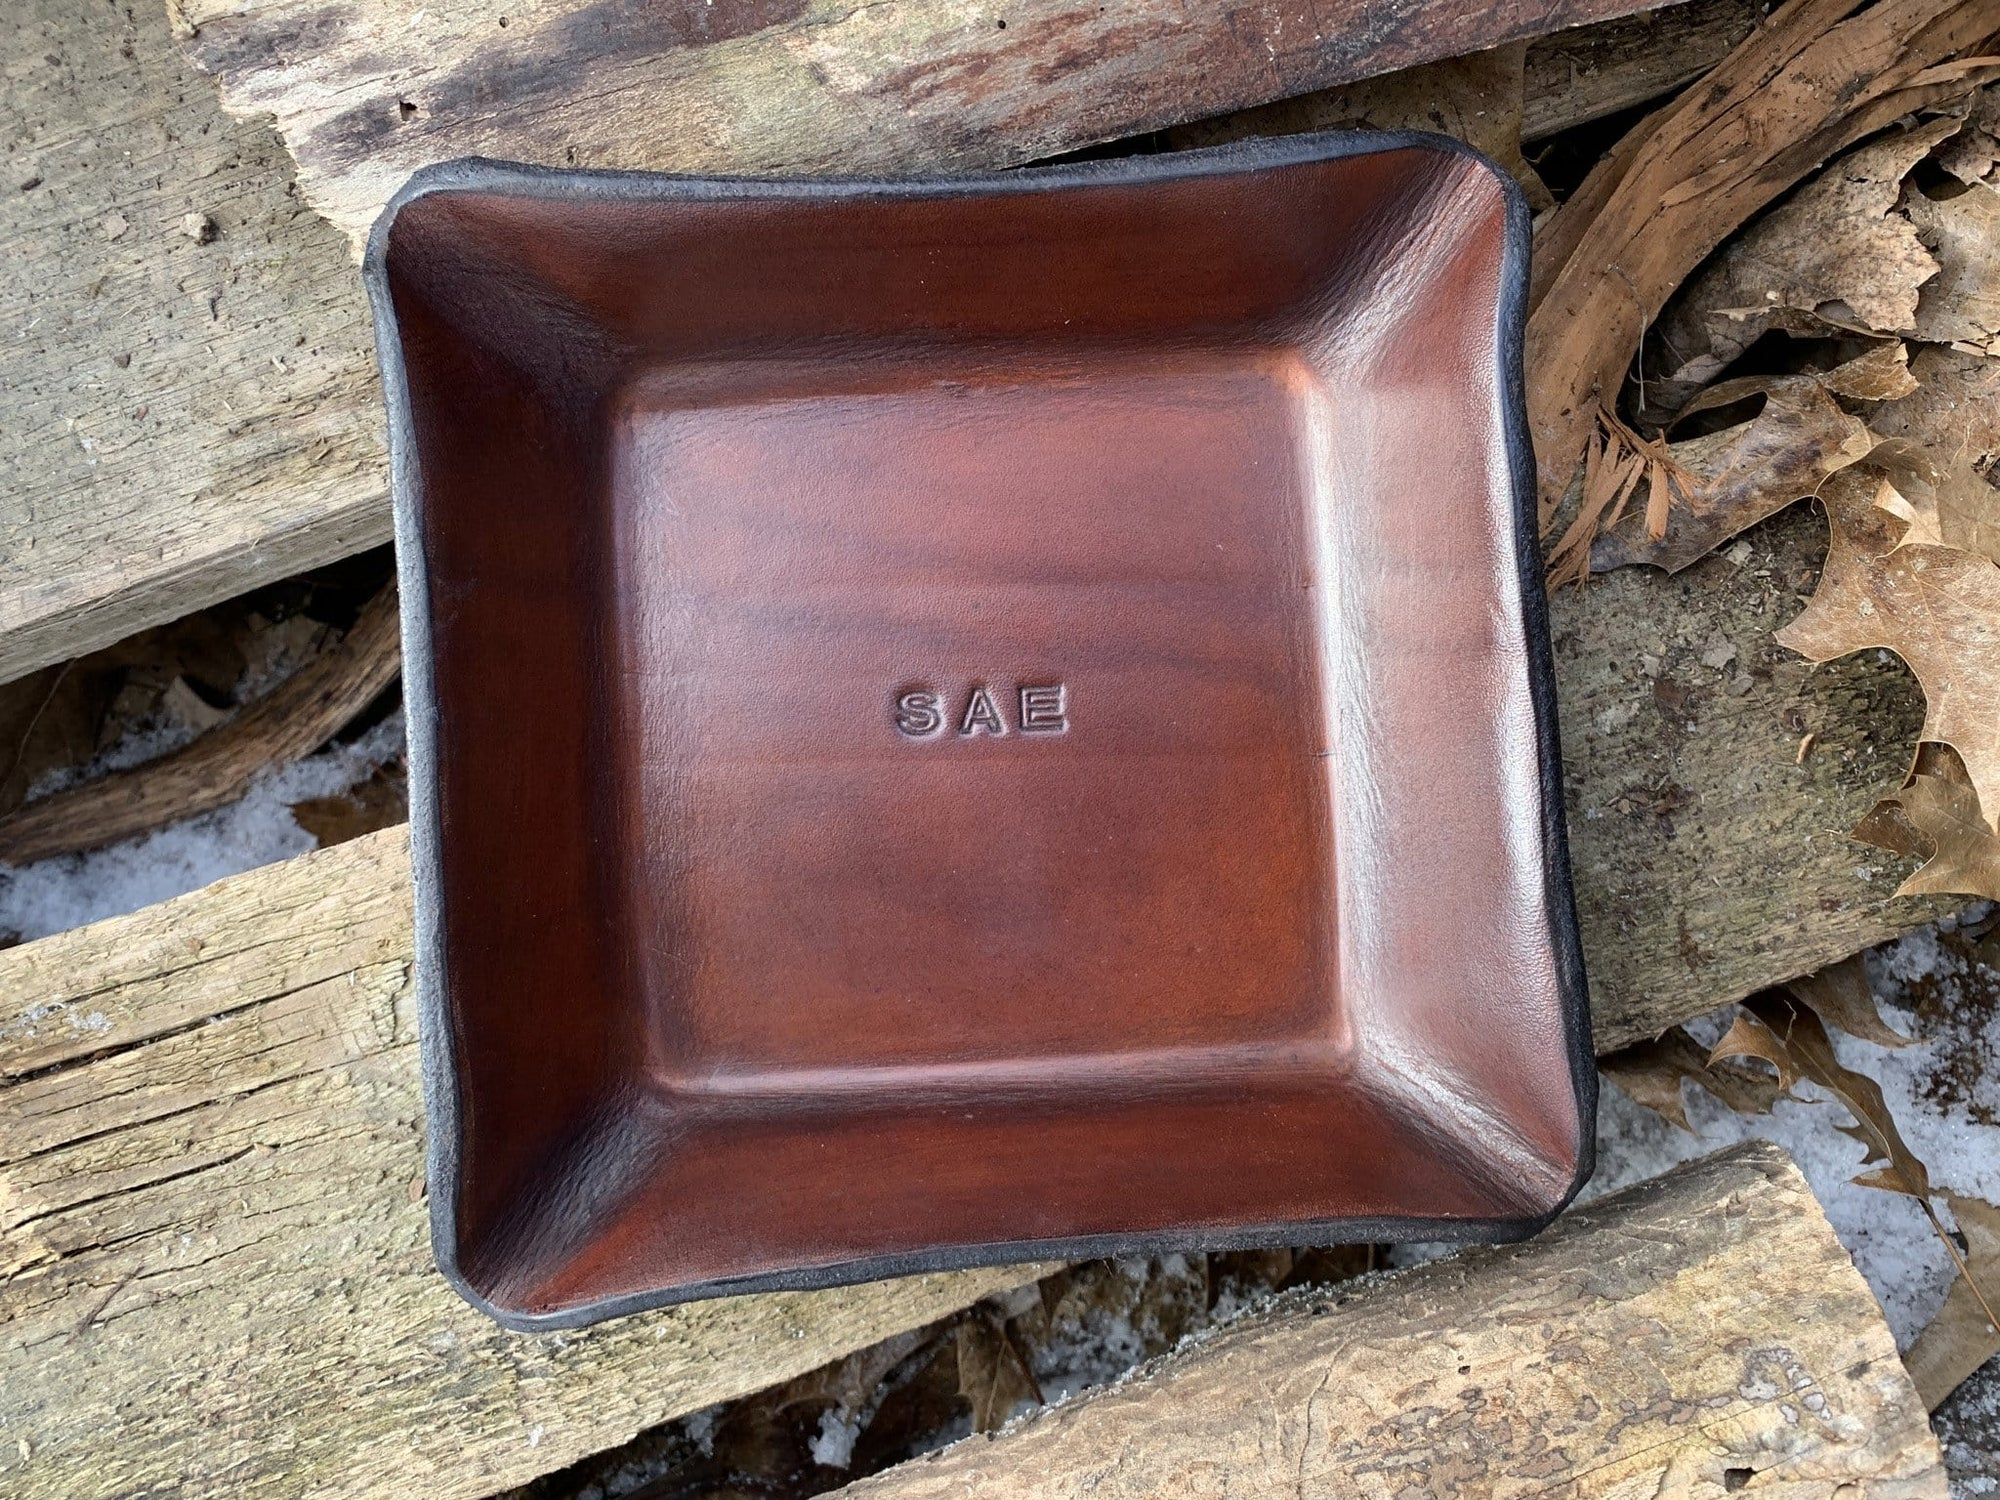 Leather valet with three letter monogram.